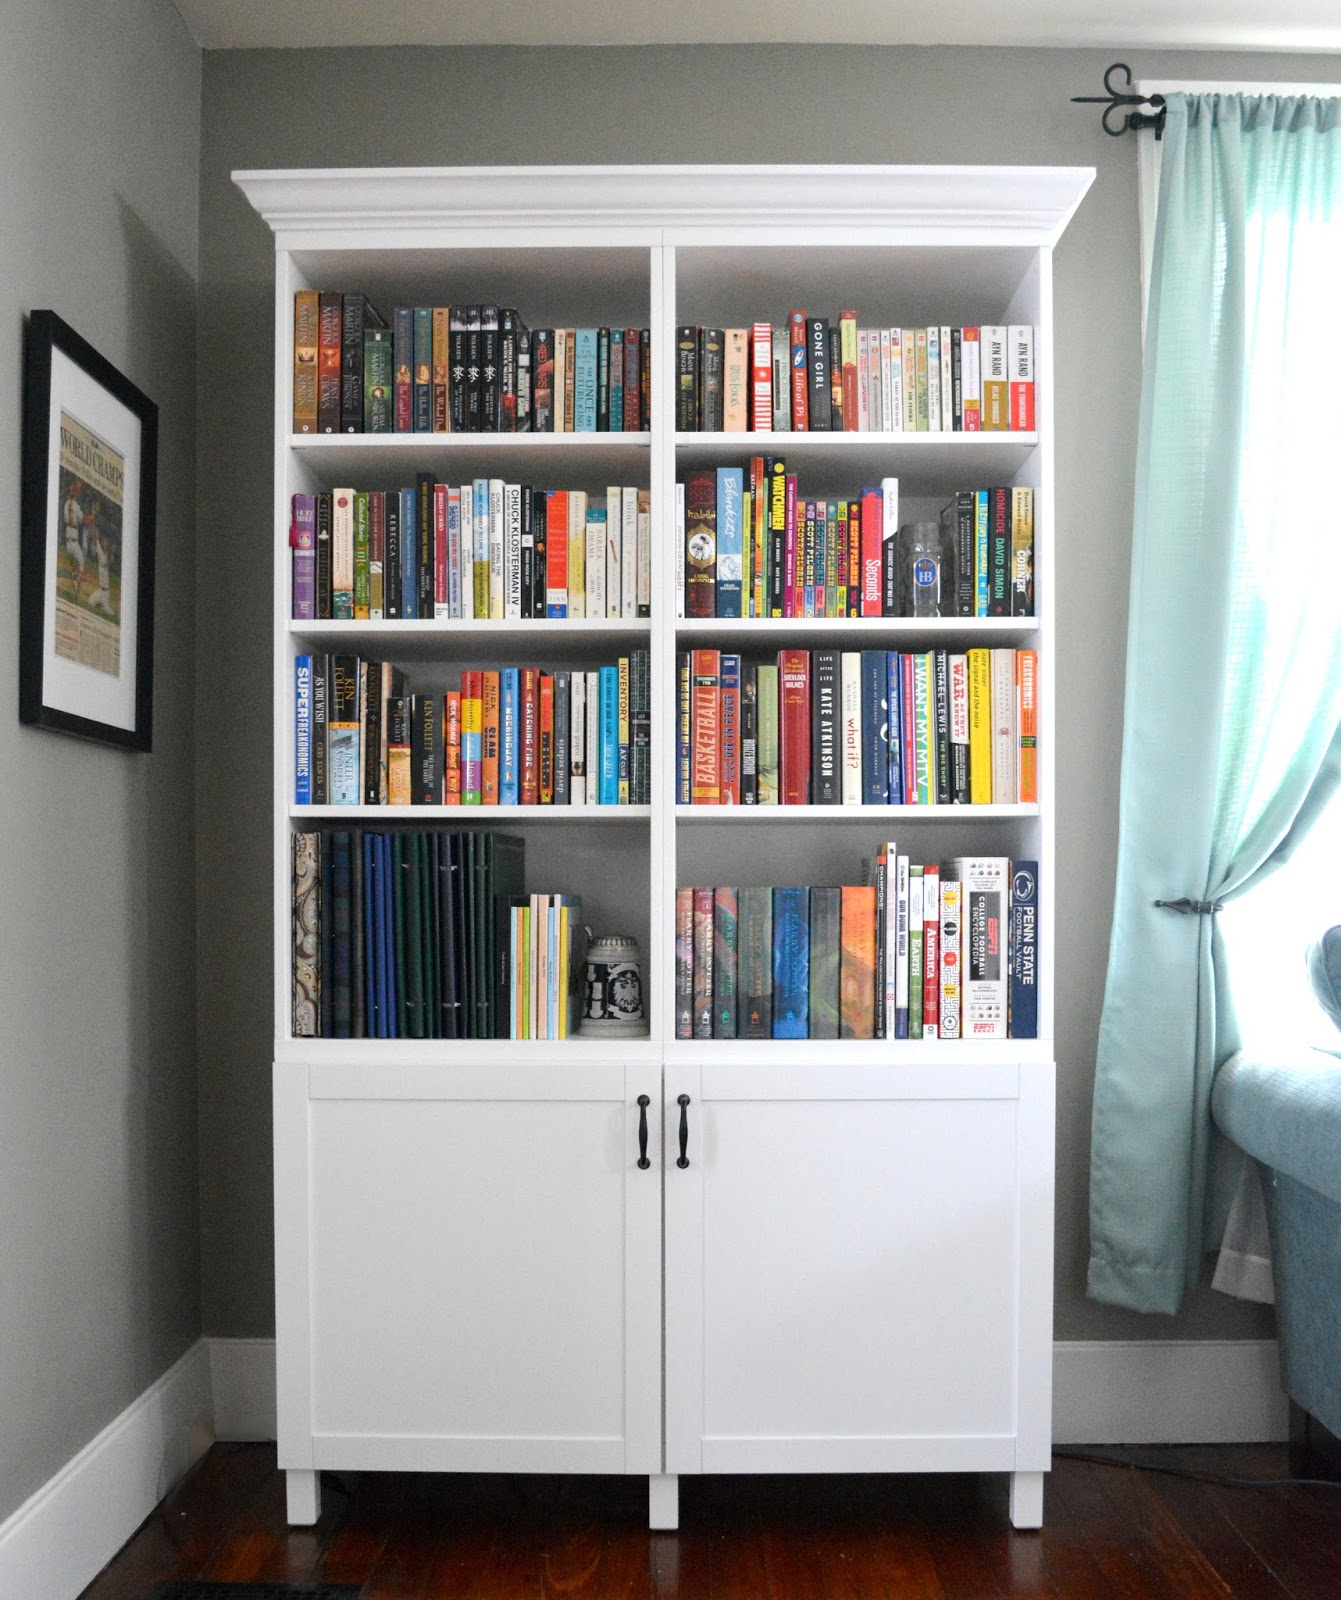 cozy birdhouse | ikea hacking: our customized ikea besta bookshelf